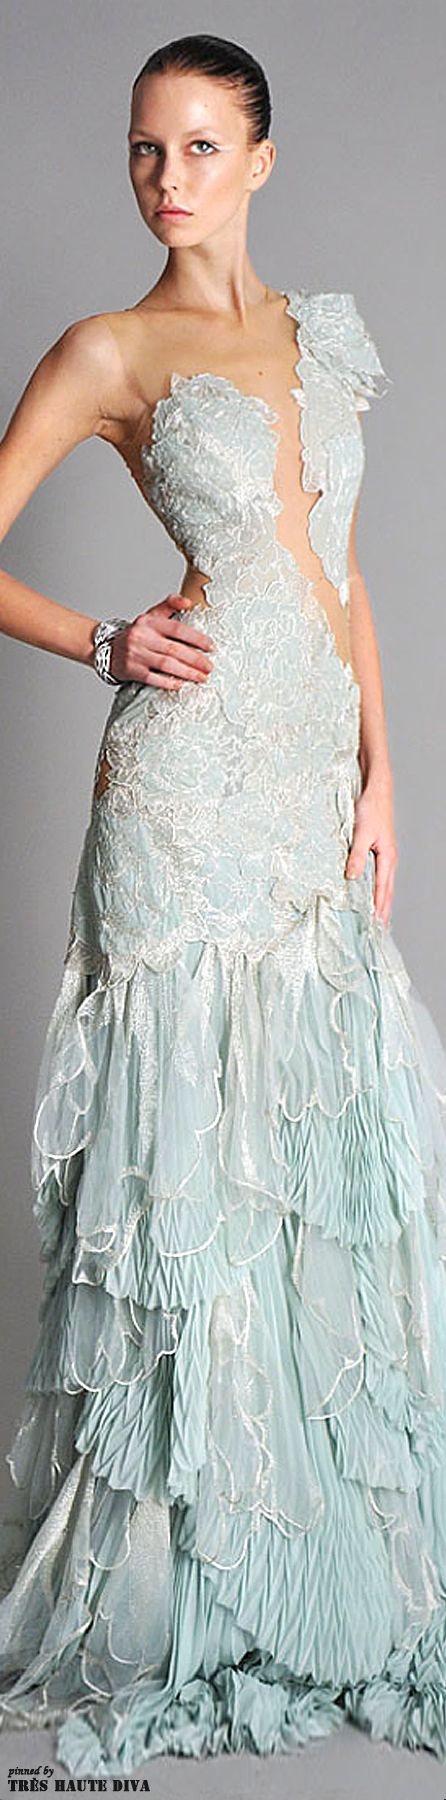 344 best Marchesa ROCKS!! images on Pinterest | Evening gowns ...